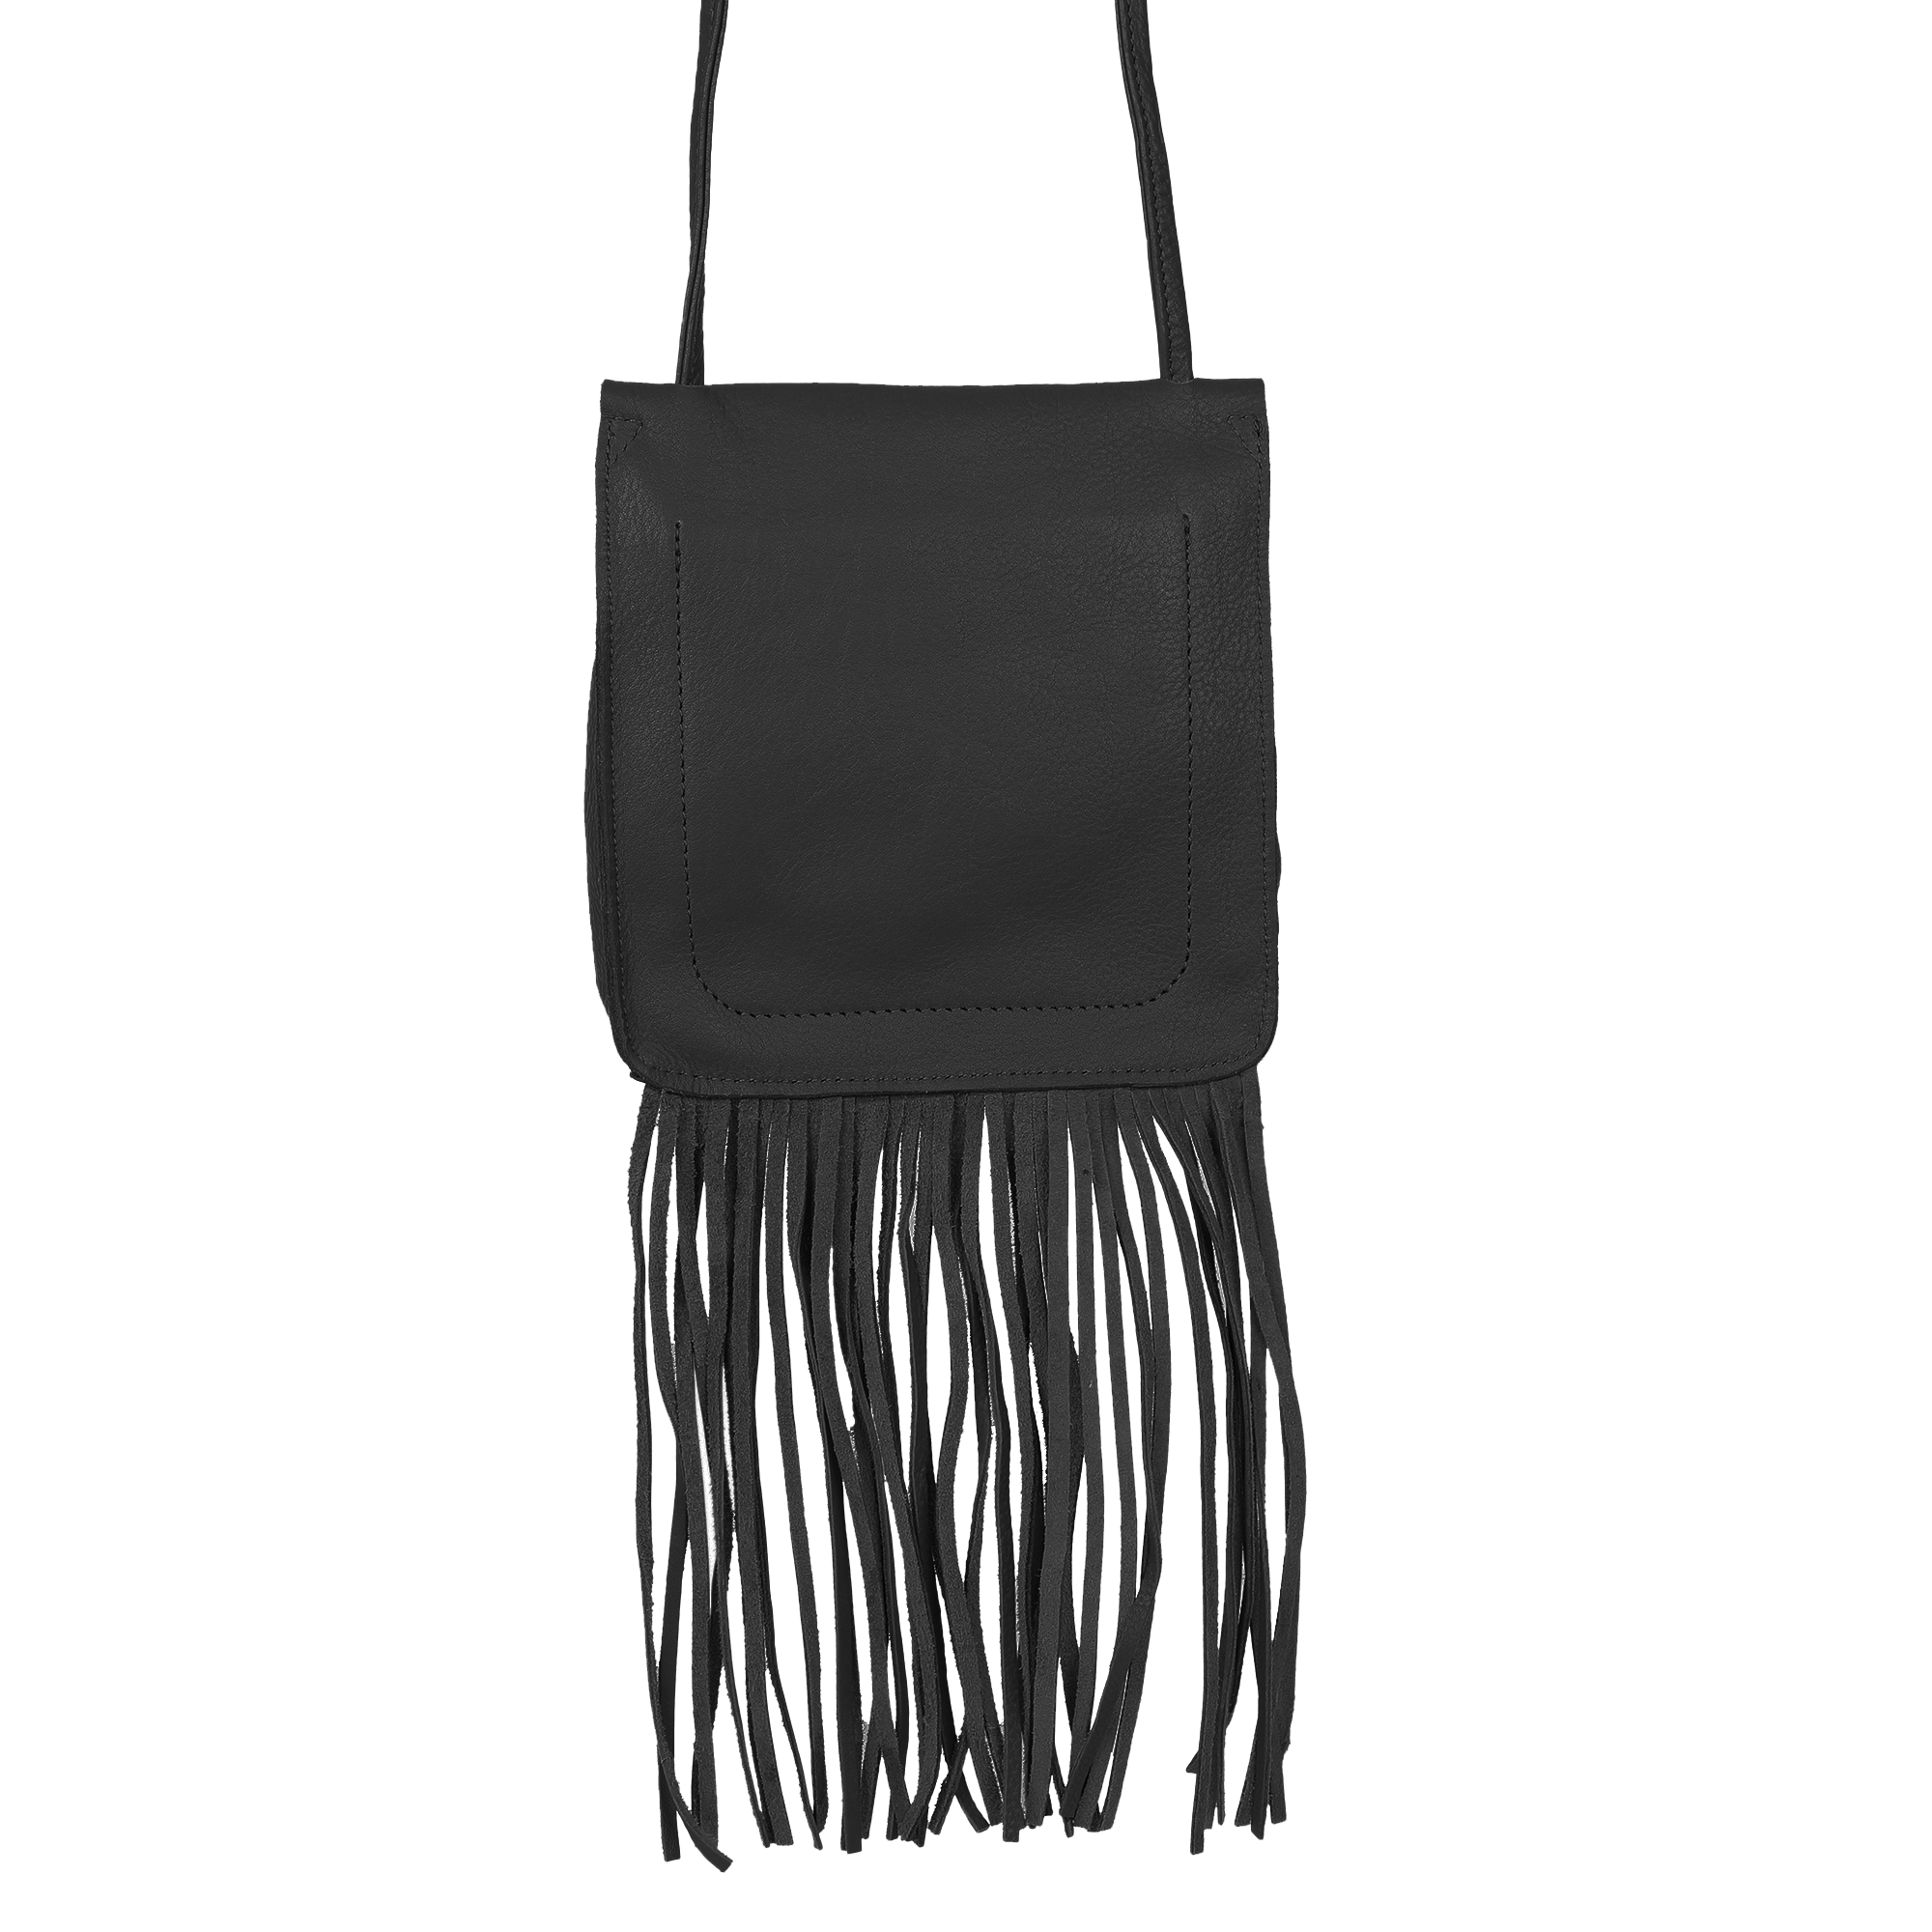 Leather Fringe Boho Crossbody Bag with Tassel for Women (Small, Black)